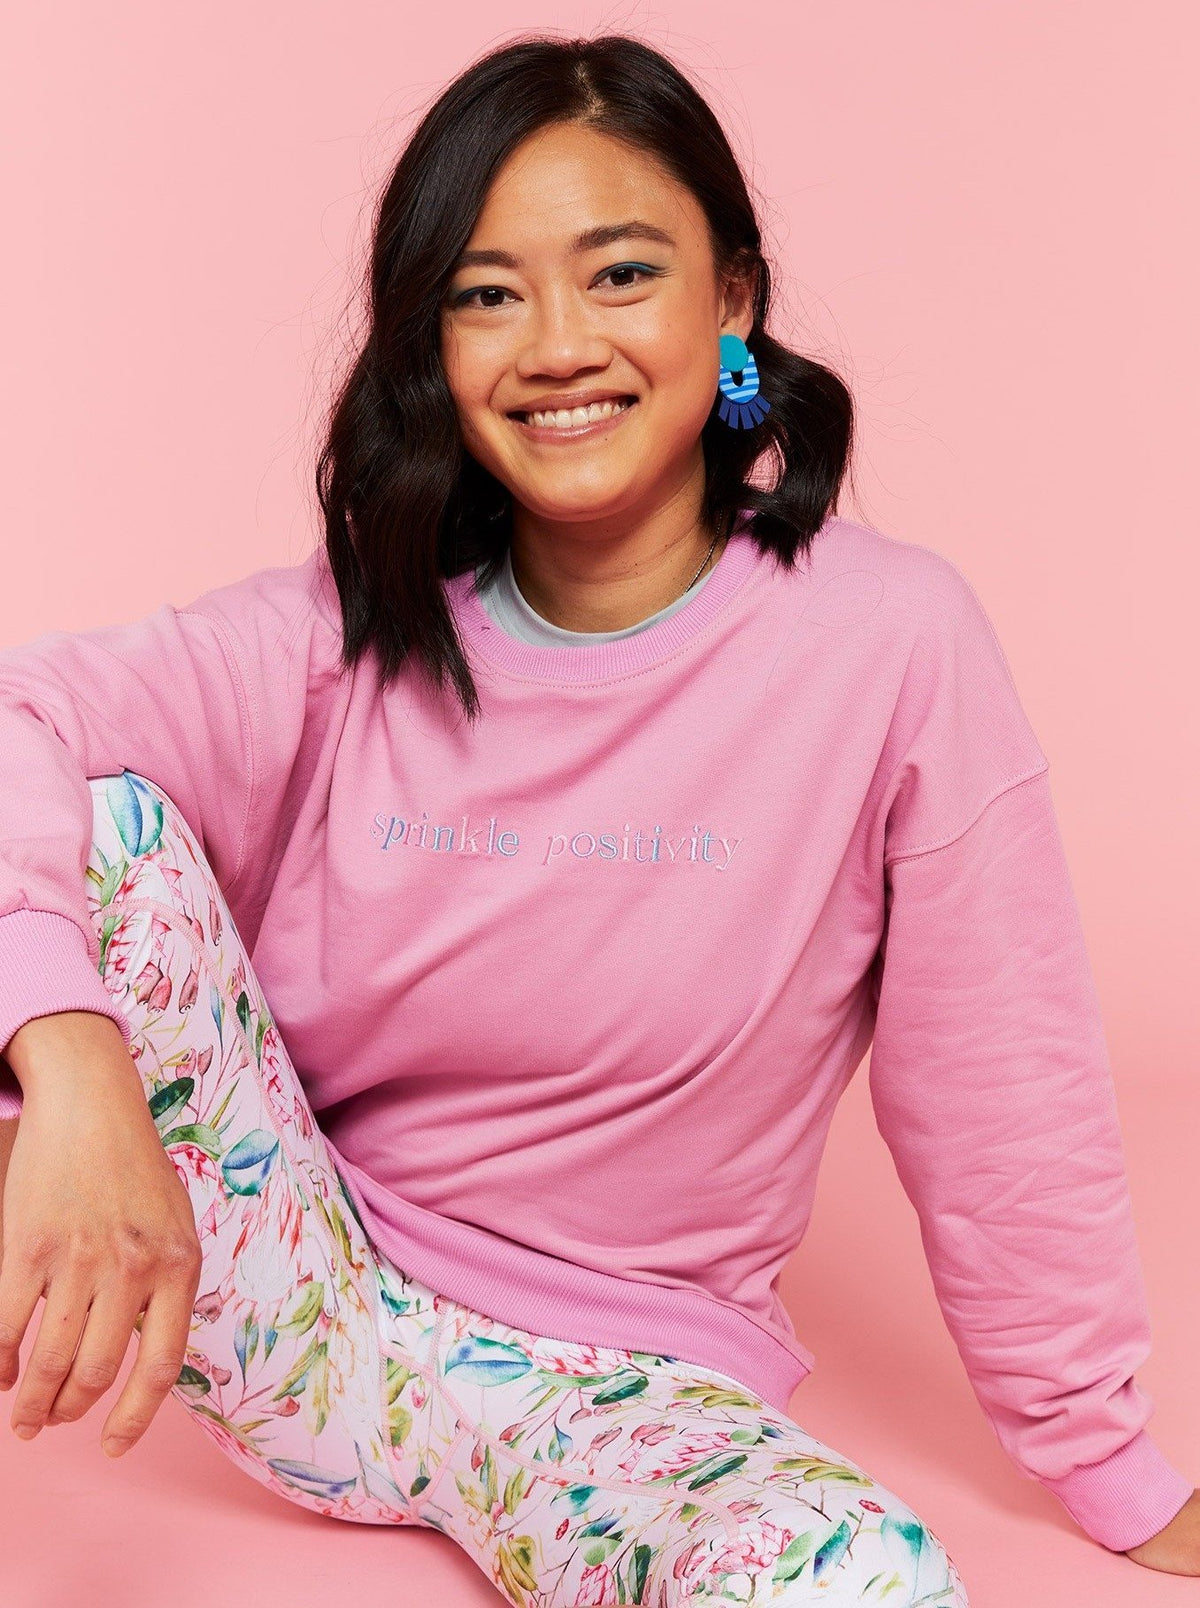 Sprinkle Positivity Sweatshirt Jumper - Pink - Mama Movement